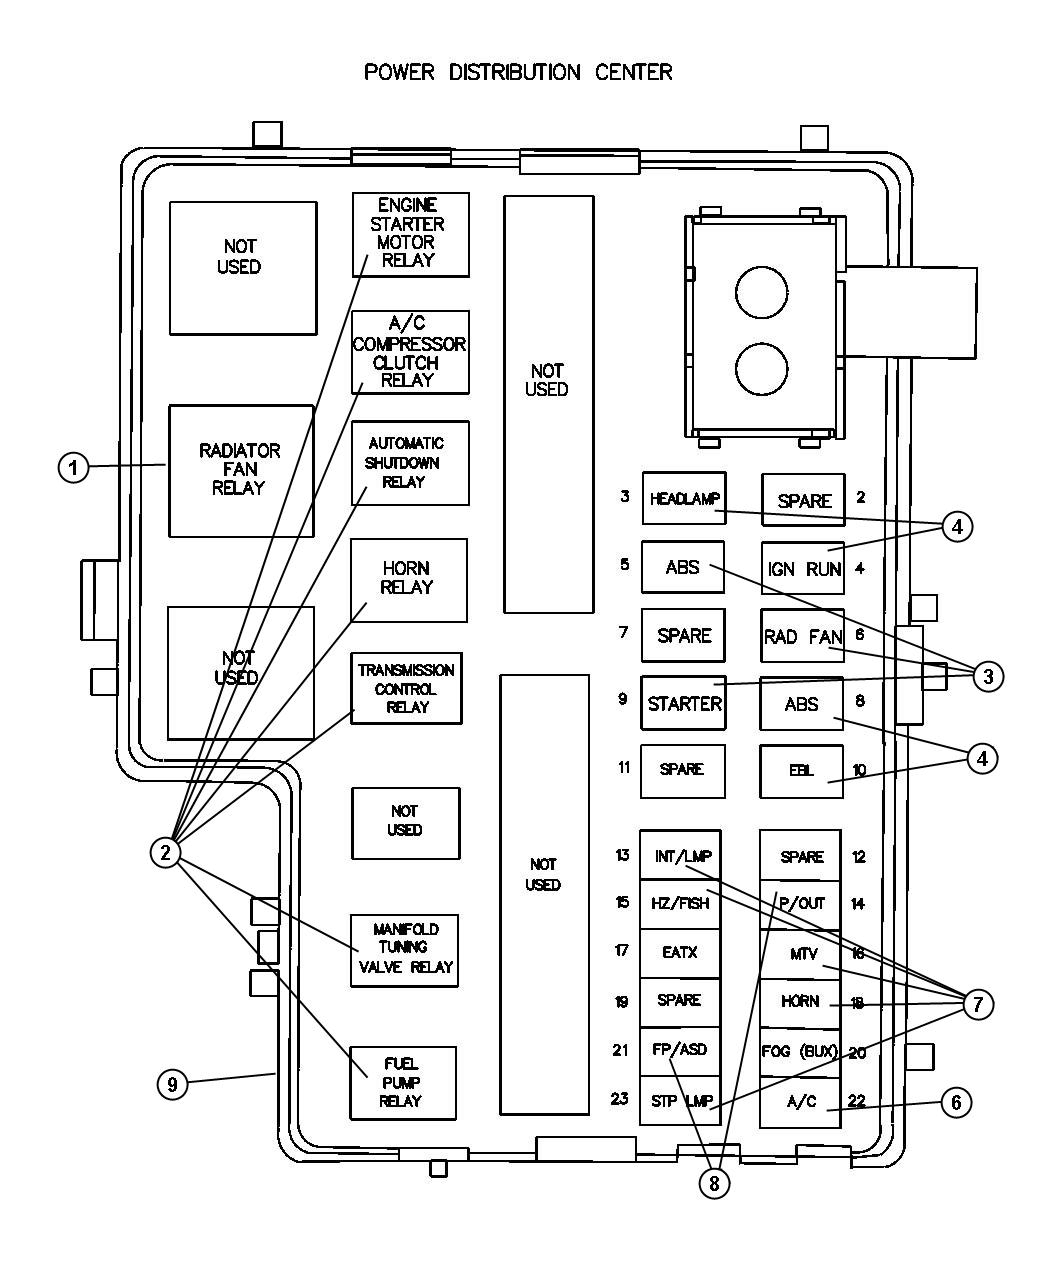 Toggle Switch Wiring Diagram For Duo Sonic - Wiring Diagram Data